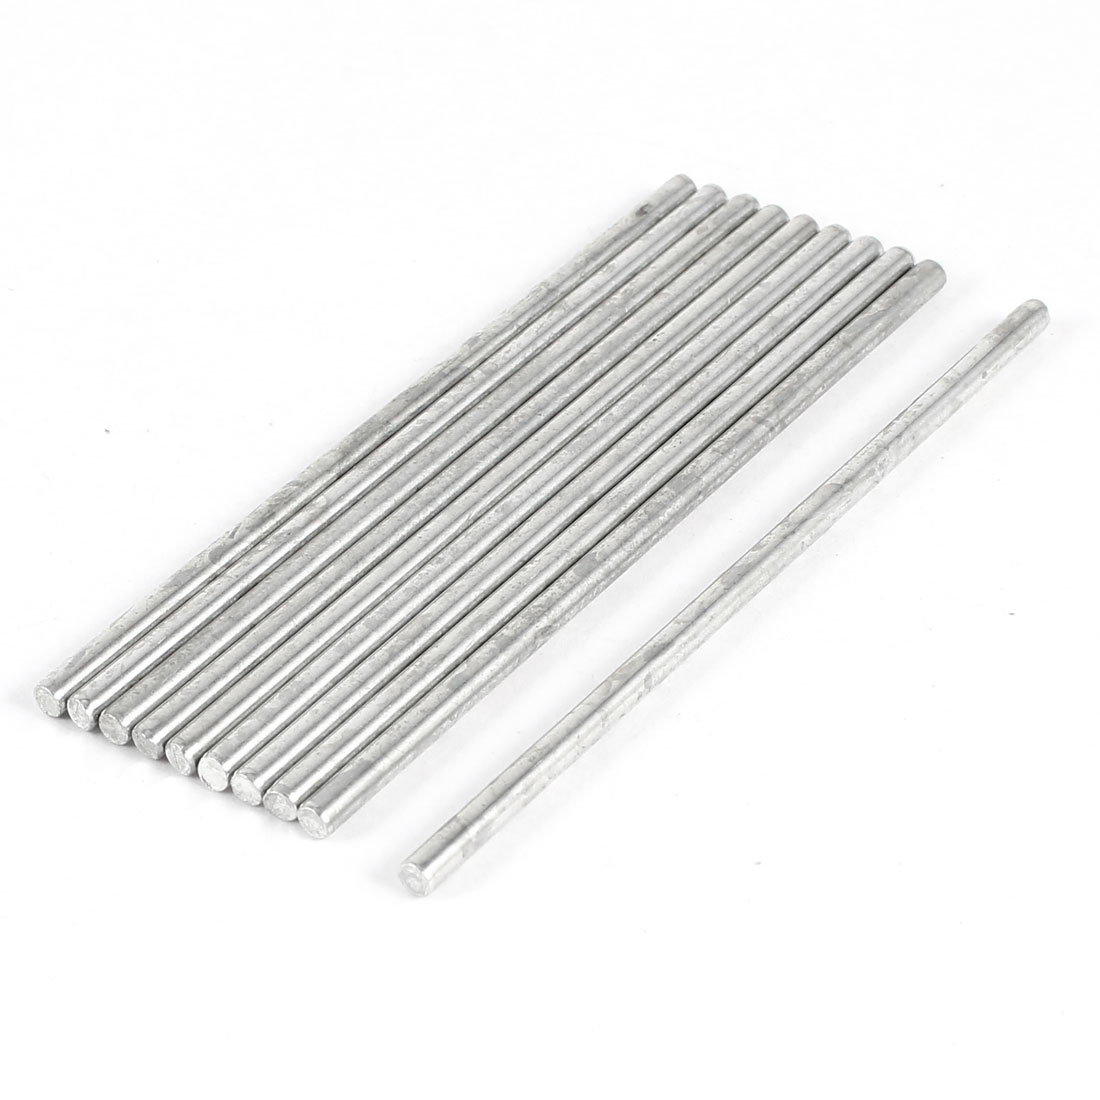 DIY Car Helicopter Model Toy Stainless Steel Round Axles Rod Bar 2.5mmx70mm 10 Pcs